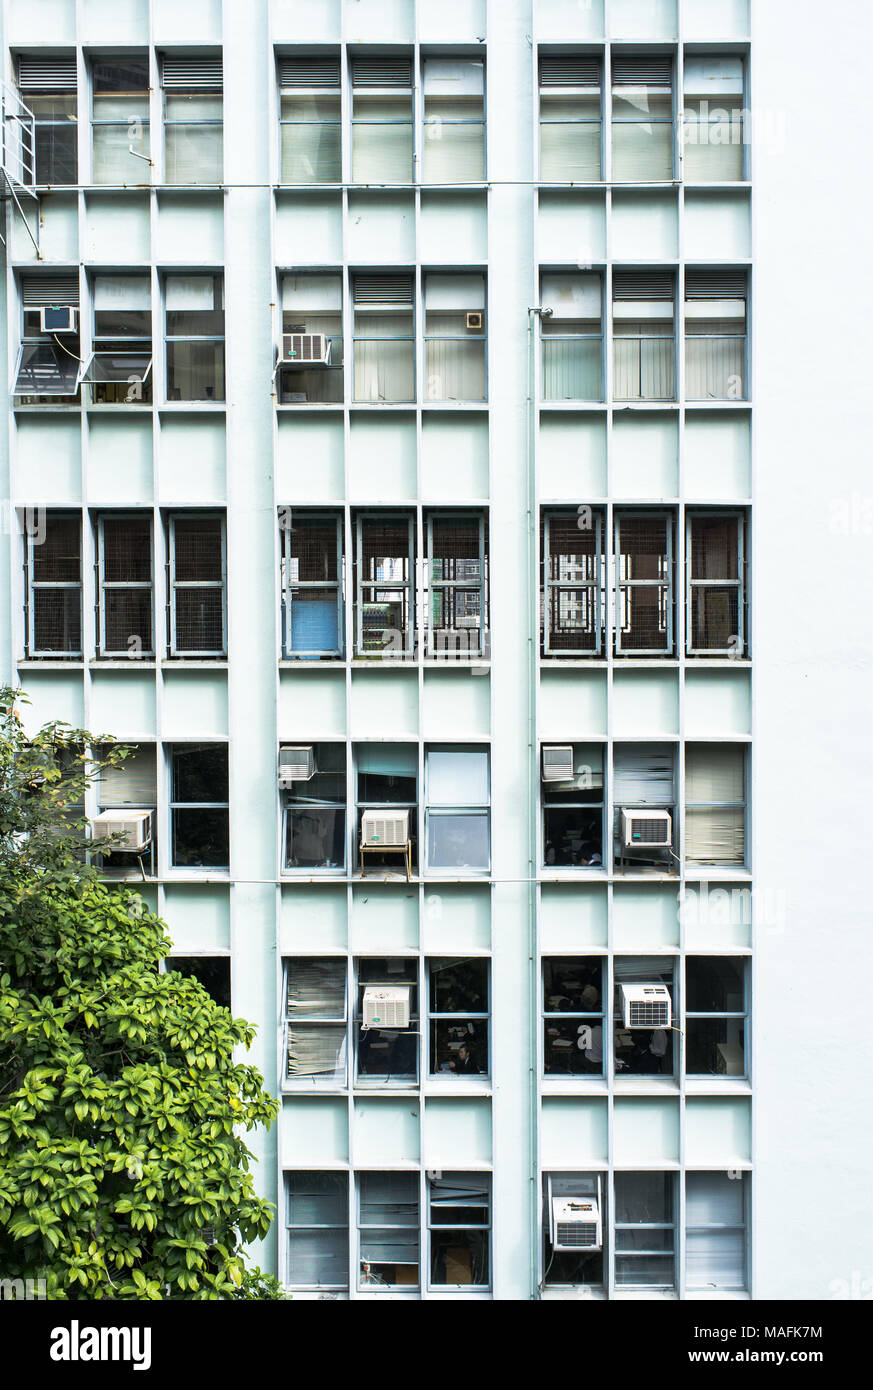 Apartment building in Hong Kong - Stock Image